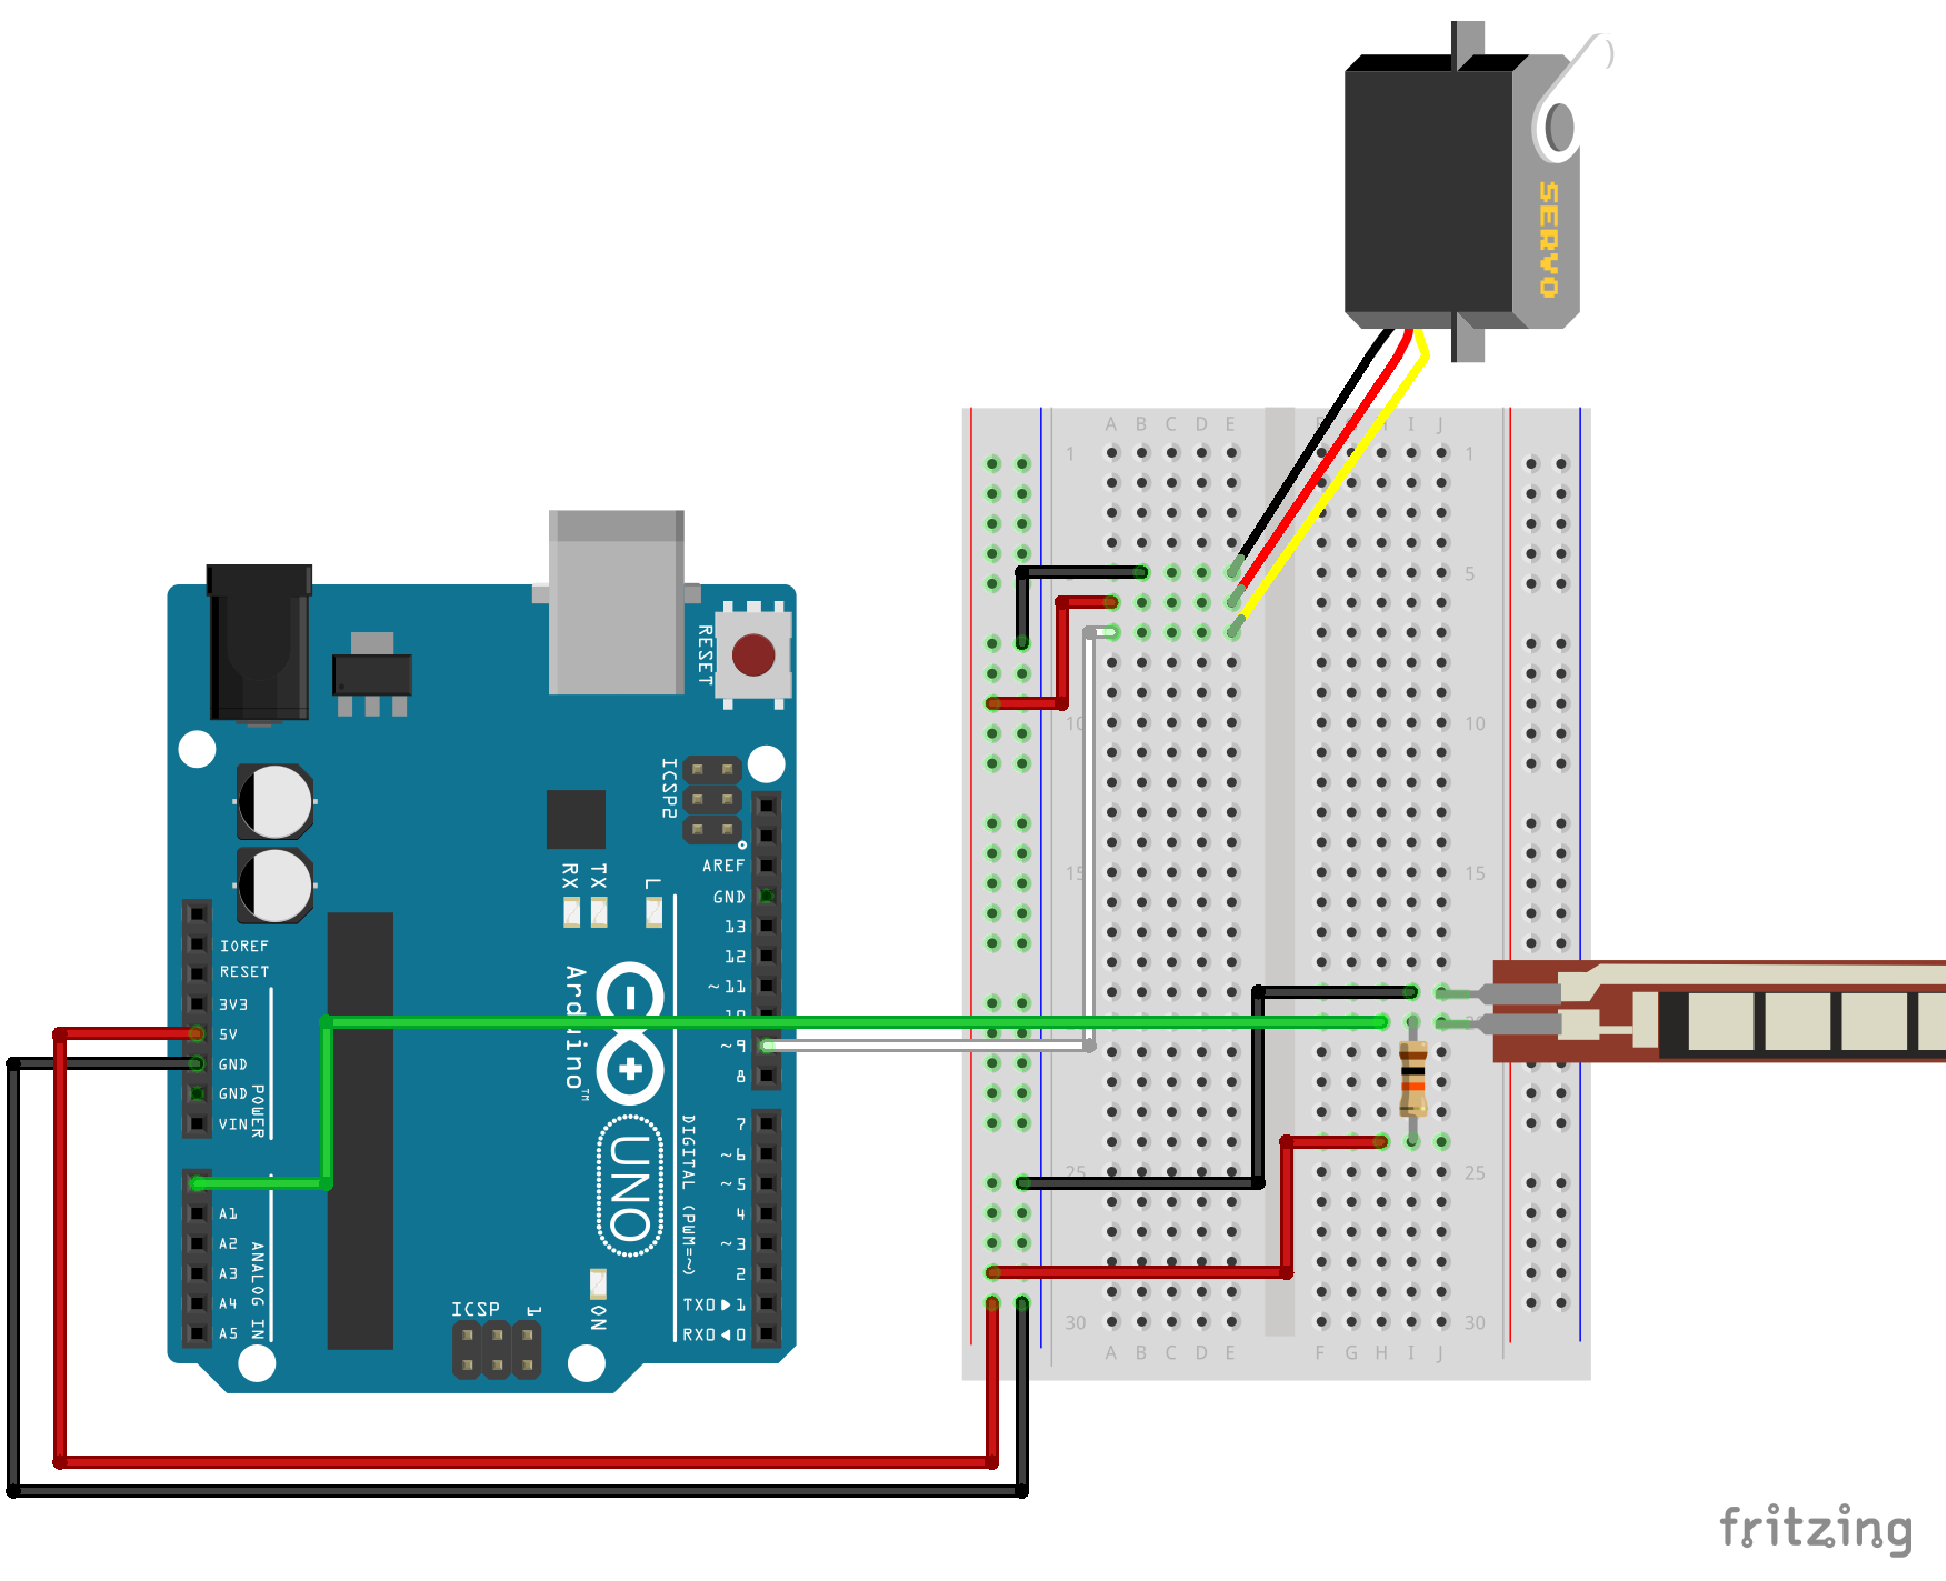 Arduino_circuit_09_02 01 sik experiment guide for arduino v3 2 learn sparkfun com arduino wire diagram maker at creativeand.co